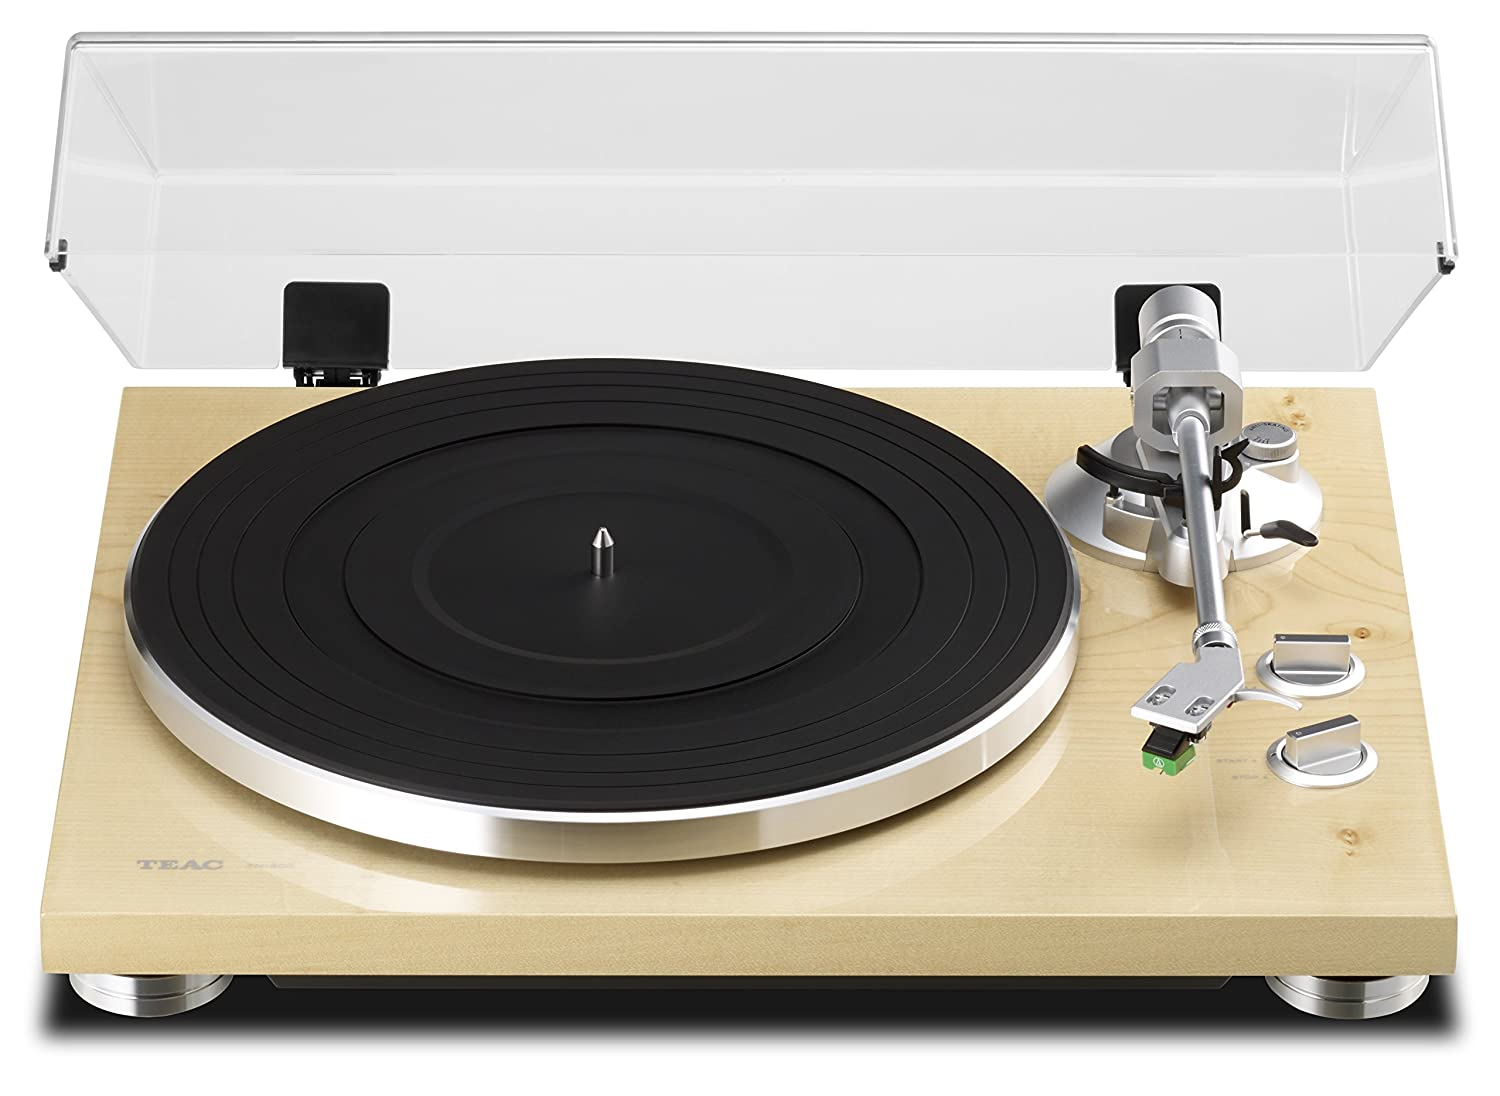 Teac TN-300 Analog Turntable with Built-in Phono Pre-Amplifier ...